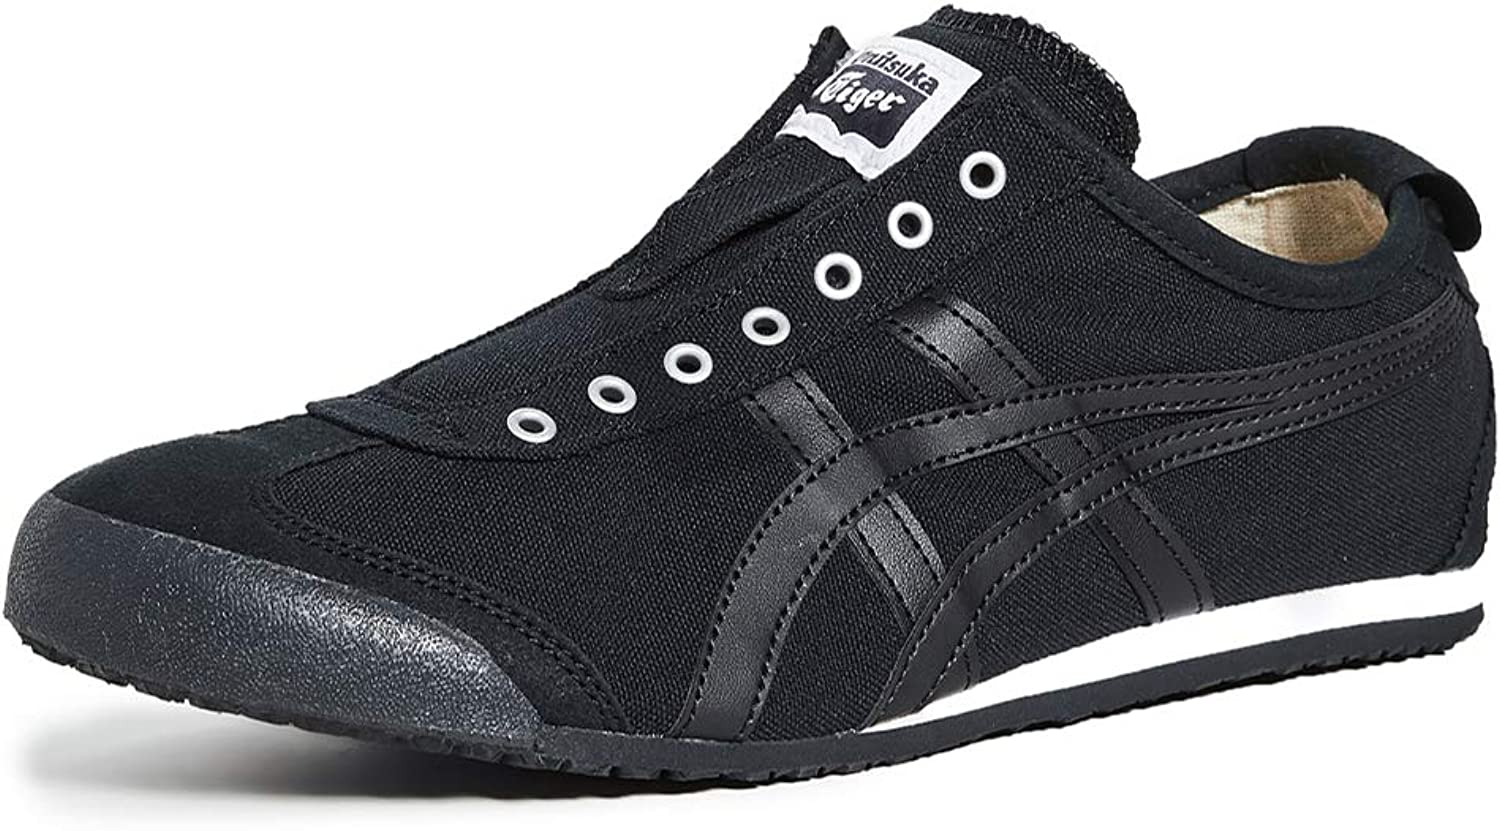 Onitsuka Tiger Unisex Mexico 66 Slip-on Shoes D3K0N: Onitsuka Tiger: Shoes